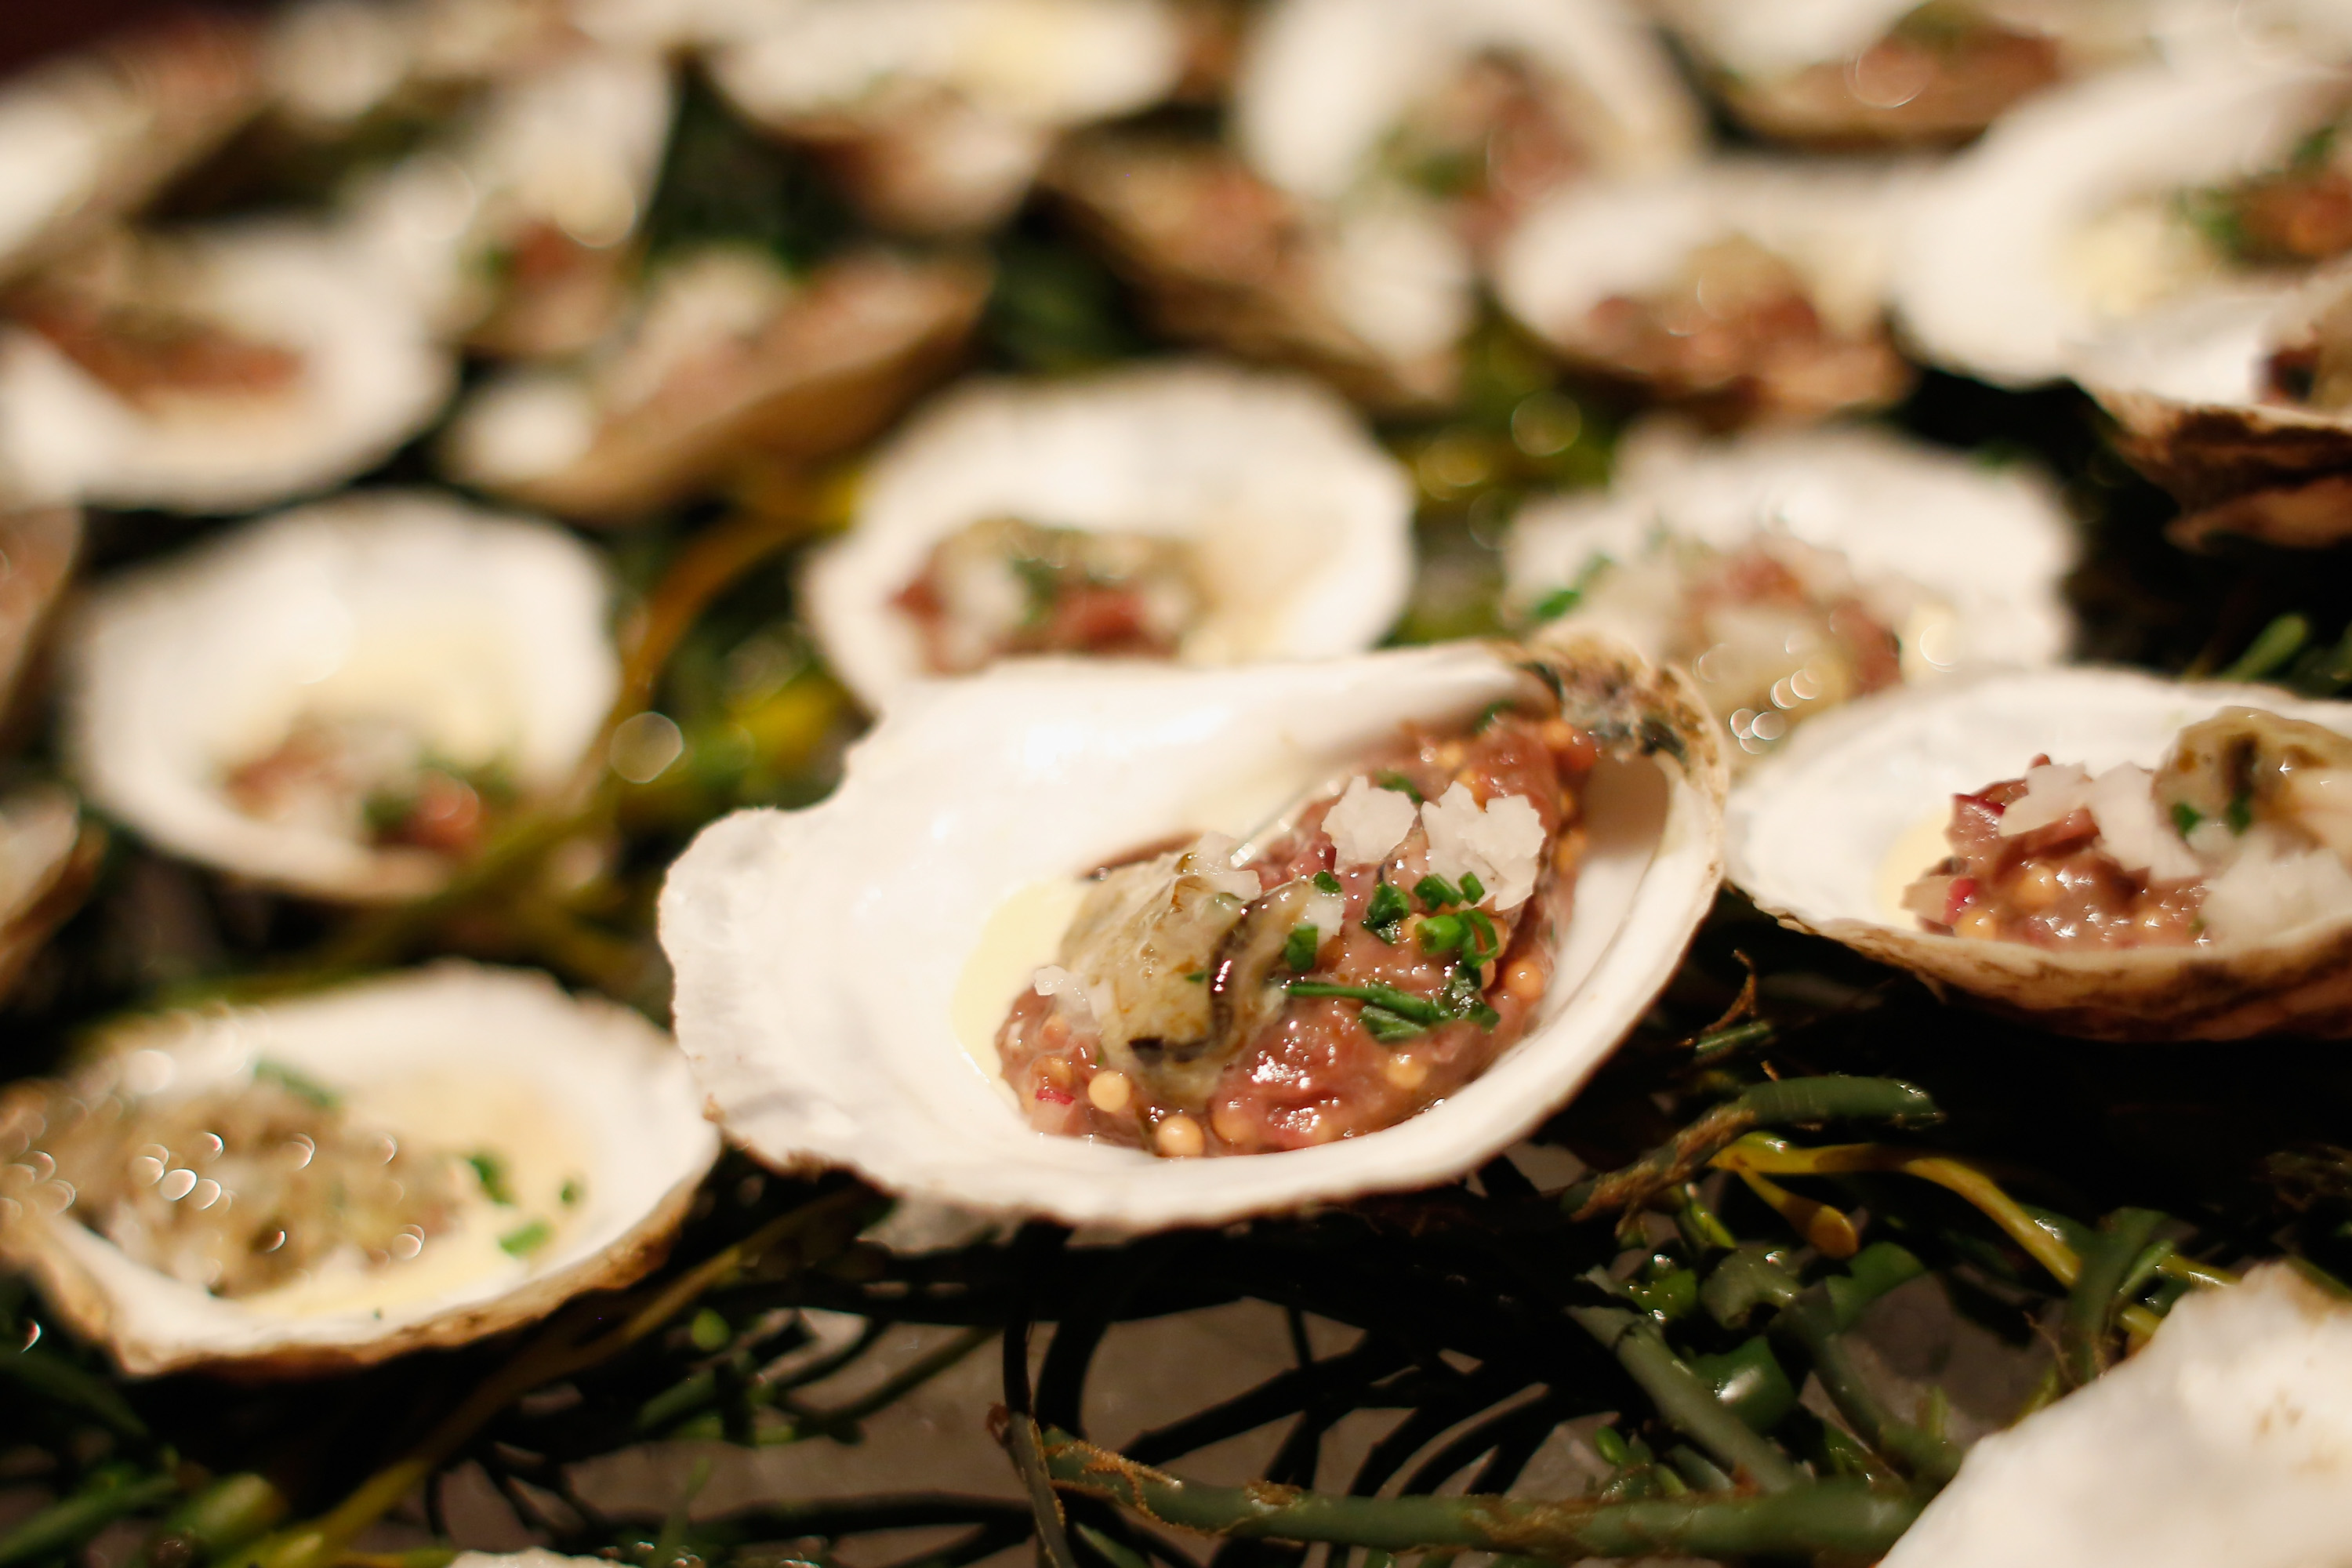 2016 New York Taste Presented By Citi Hosted By New York Magazine